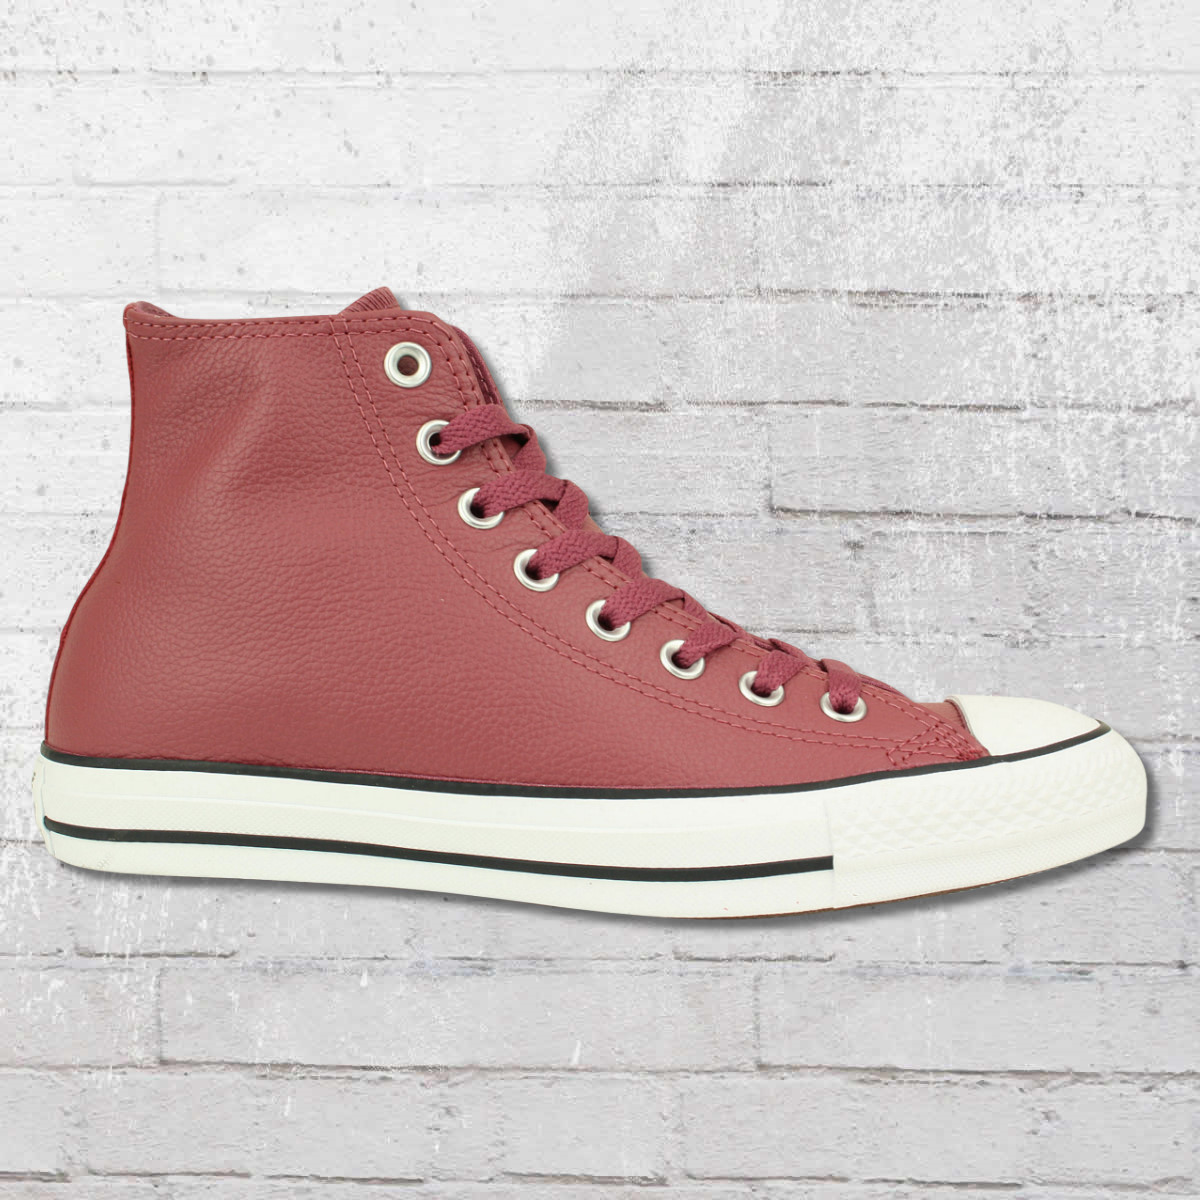 Order now   Converse Women Leather Chucks AS CT HI 157614 C Shoes ... 3b3f921f09